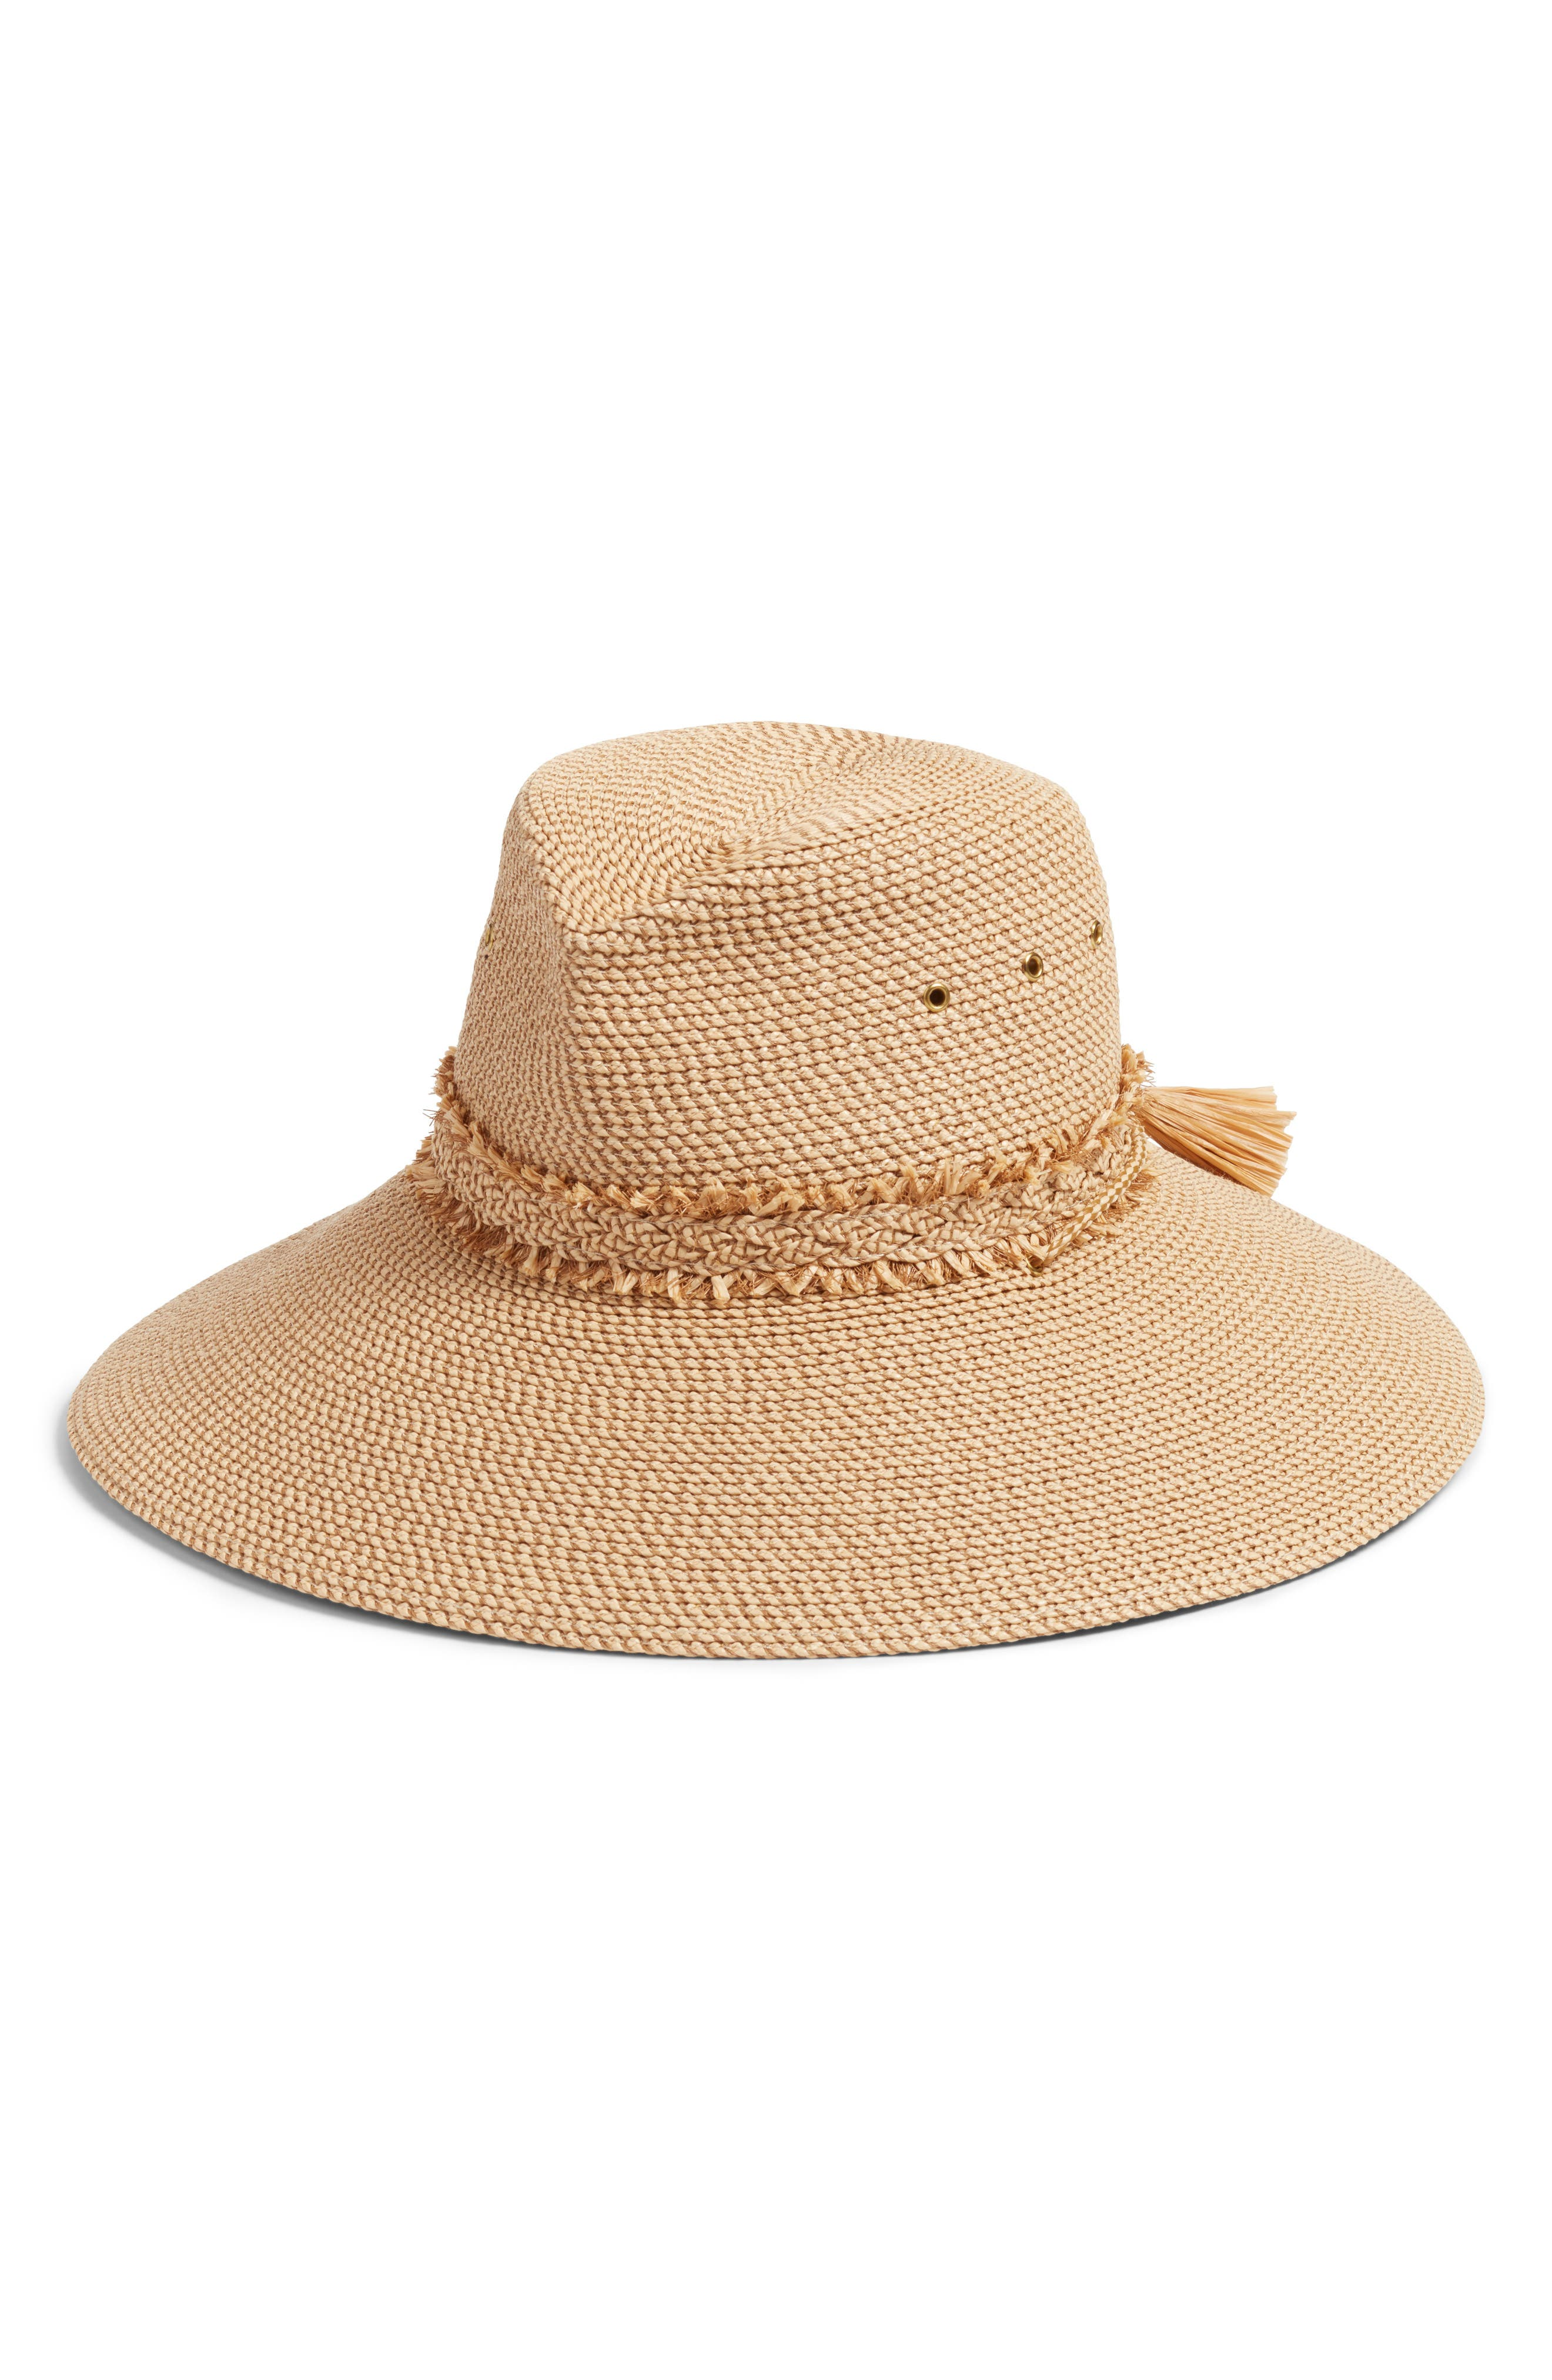 Voyager Squishee<sup>®</sup> Sun Hat,                         Main,                         color,